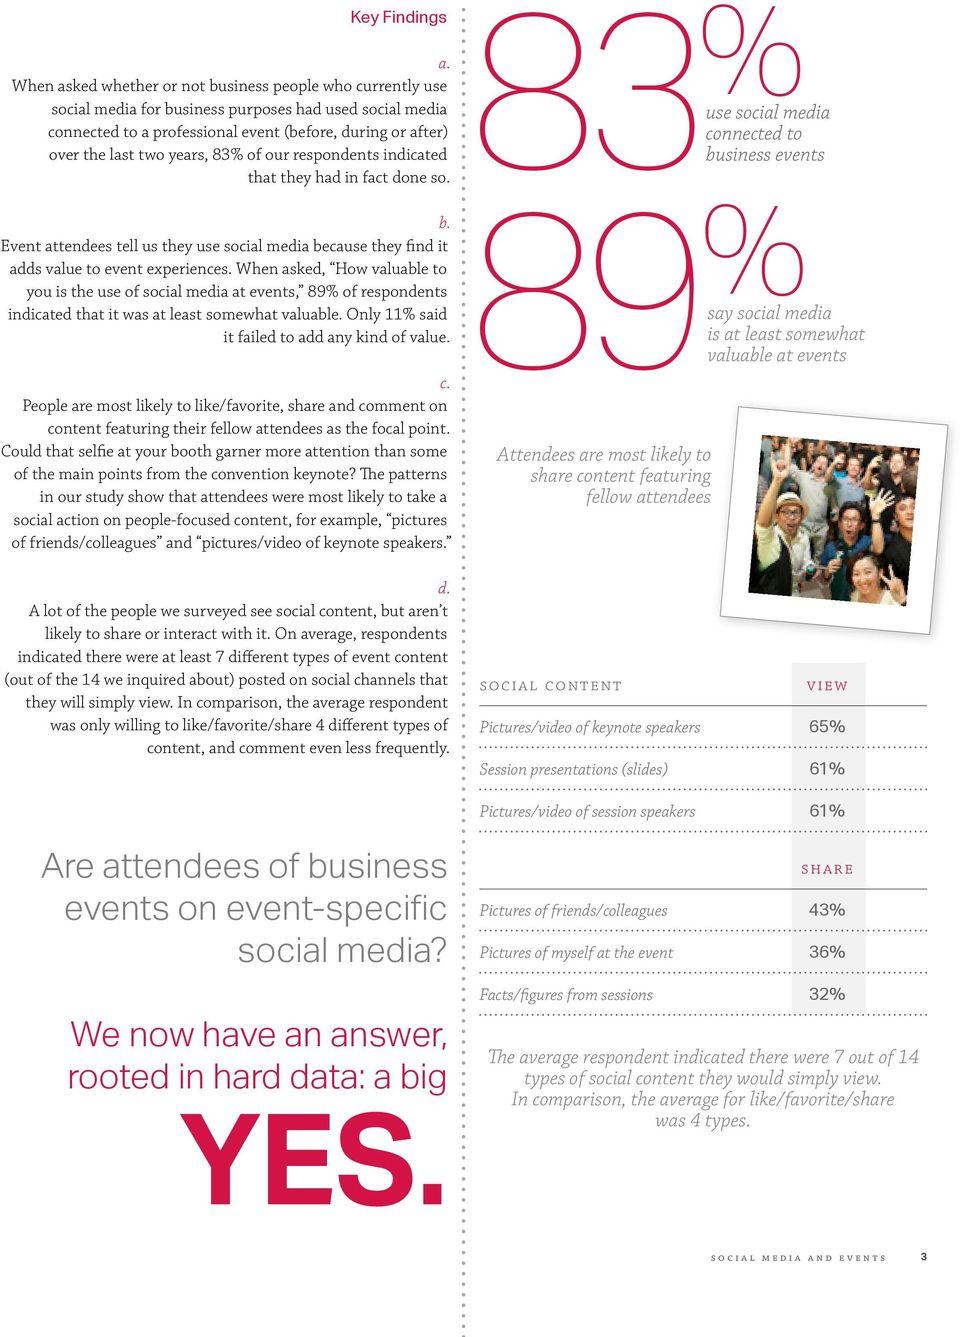 years, 83% of our respondents indicated that they had in fact done so. b. Event attendees tell us they use social media because they find it adds value to event experiences.